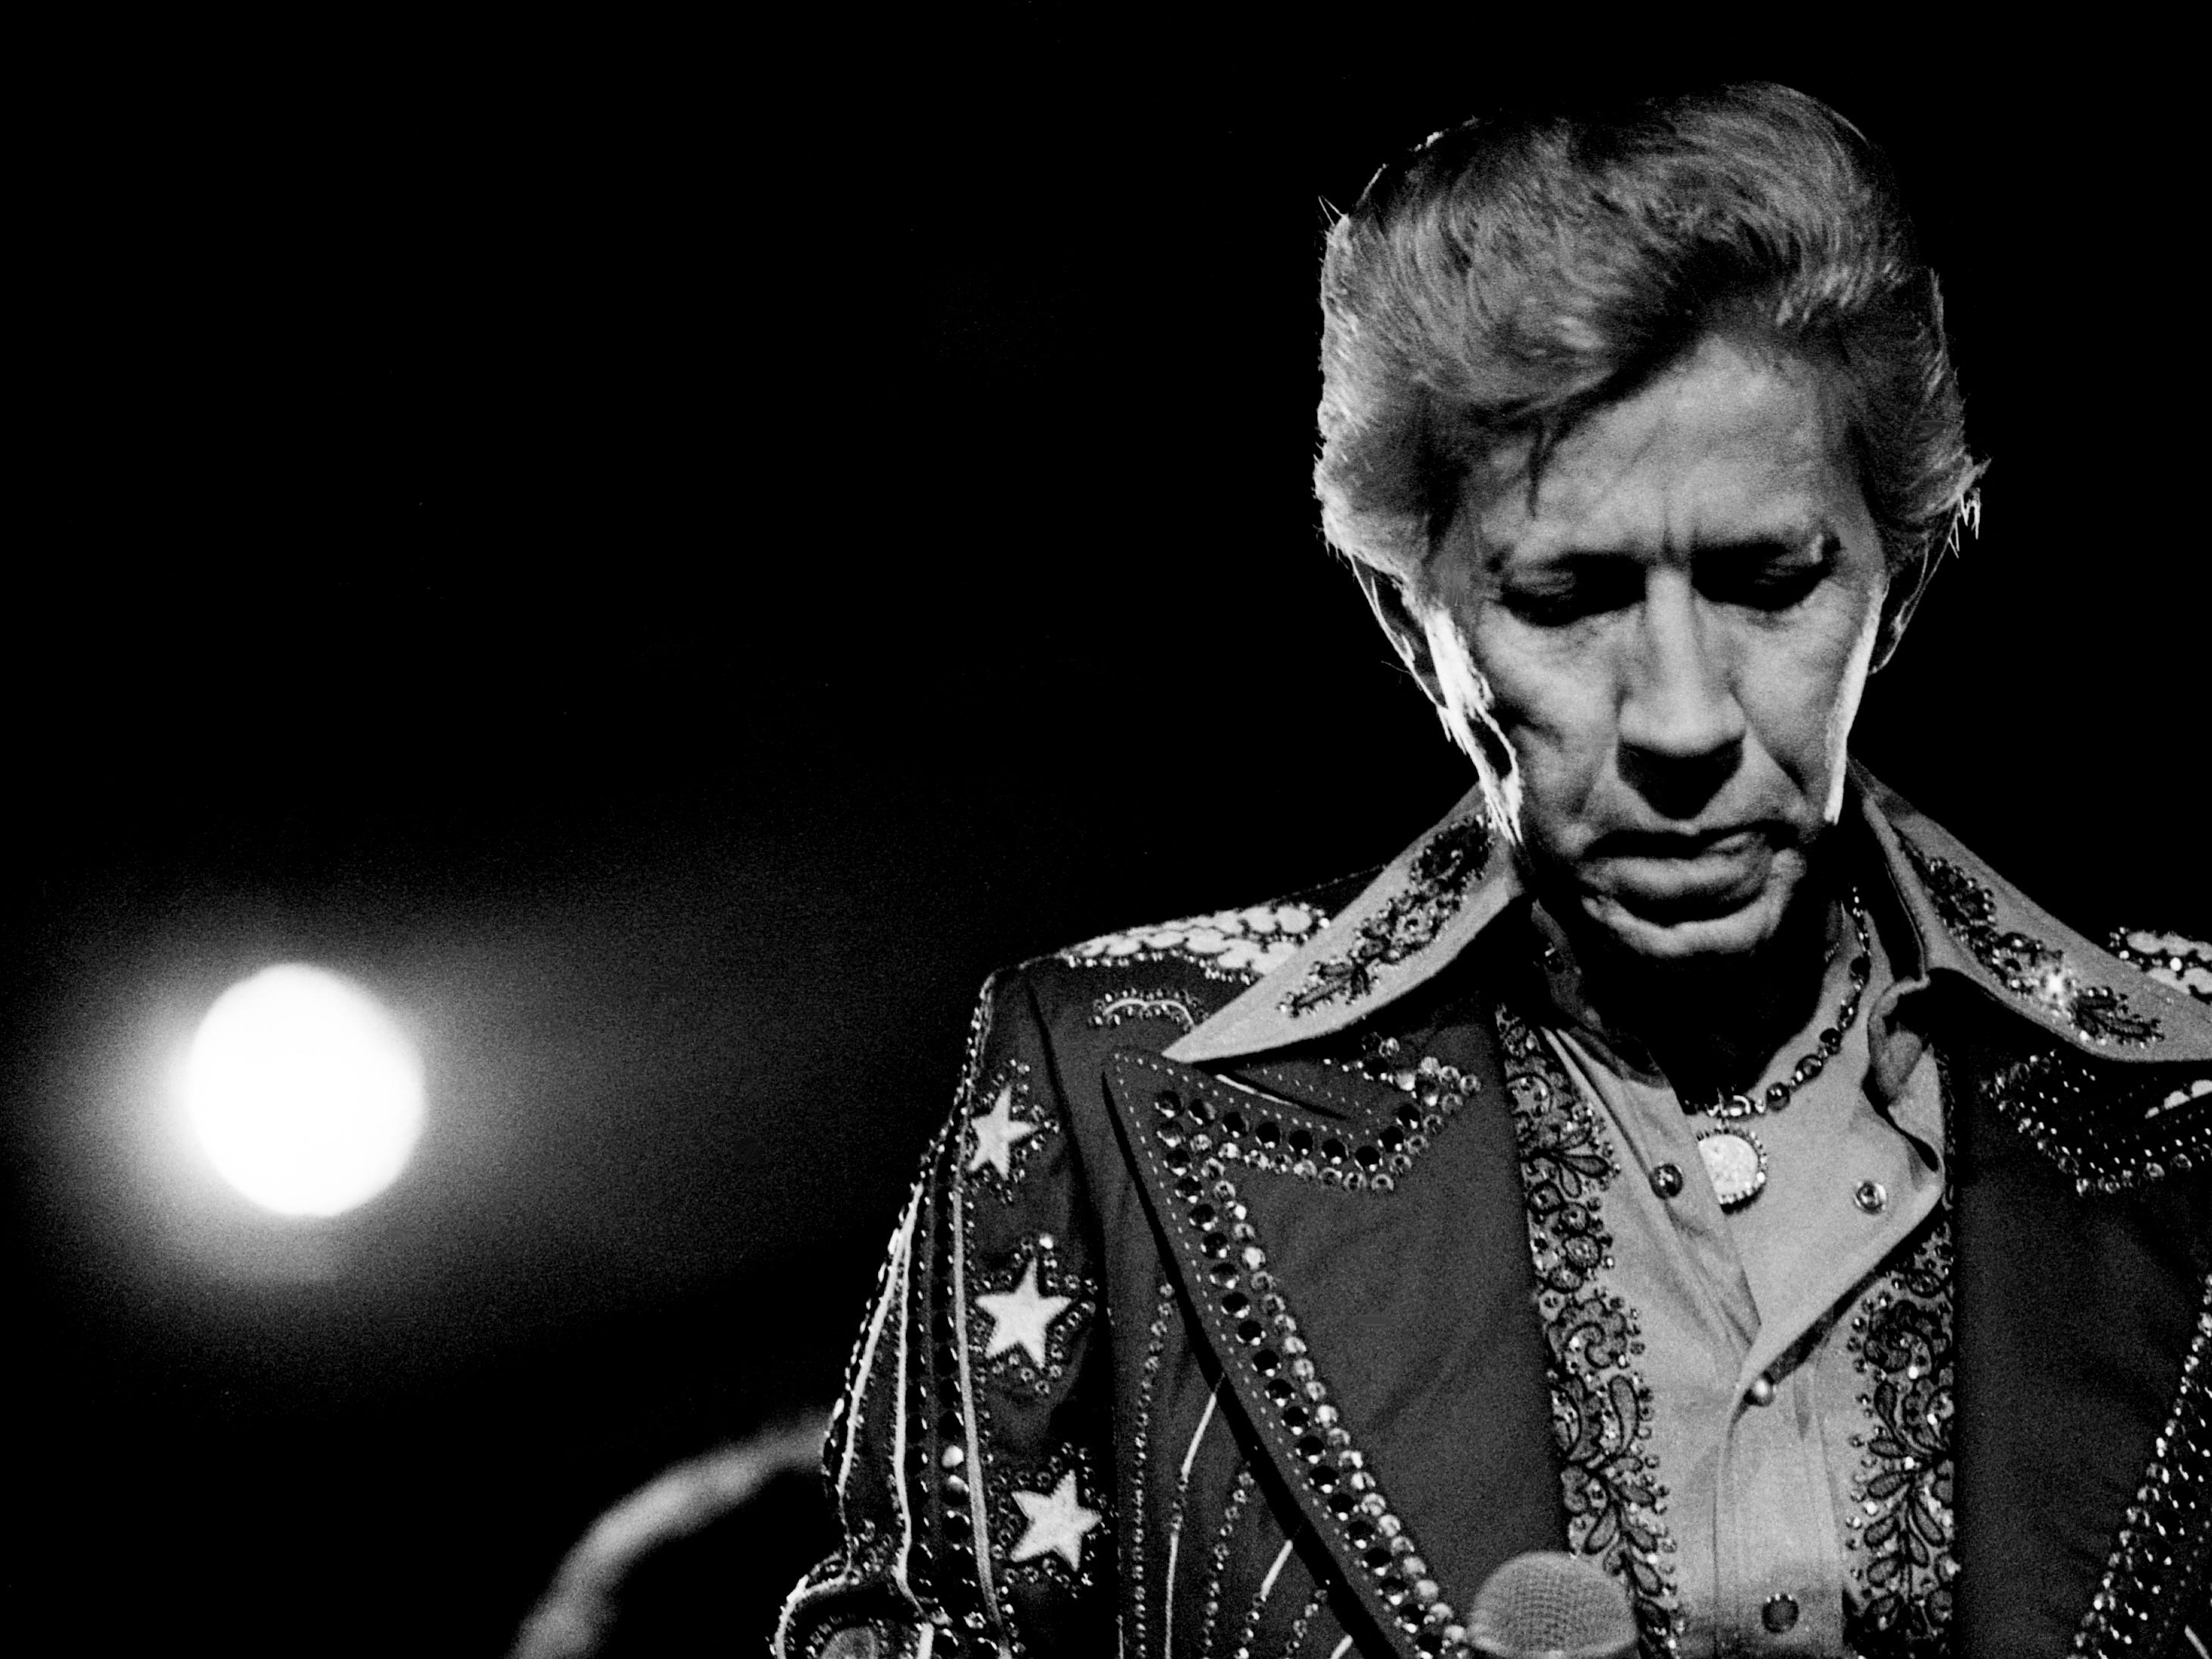 Porter Wagoner finishes up one of his traditional songs before a standing-room only crowd at the Exit/In Jan. 31, 1979. Wagoner was unquestionably a hit, but his much-anticipated disco debut was a lot closer to the Grand Ole Opry than Studio 54.